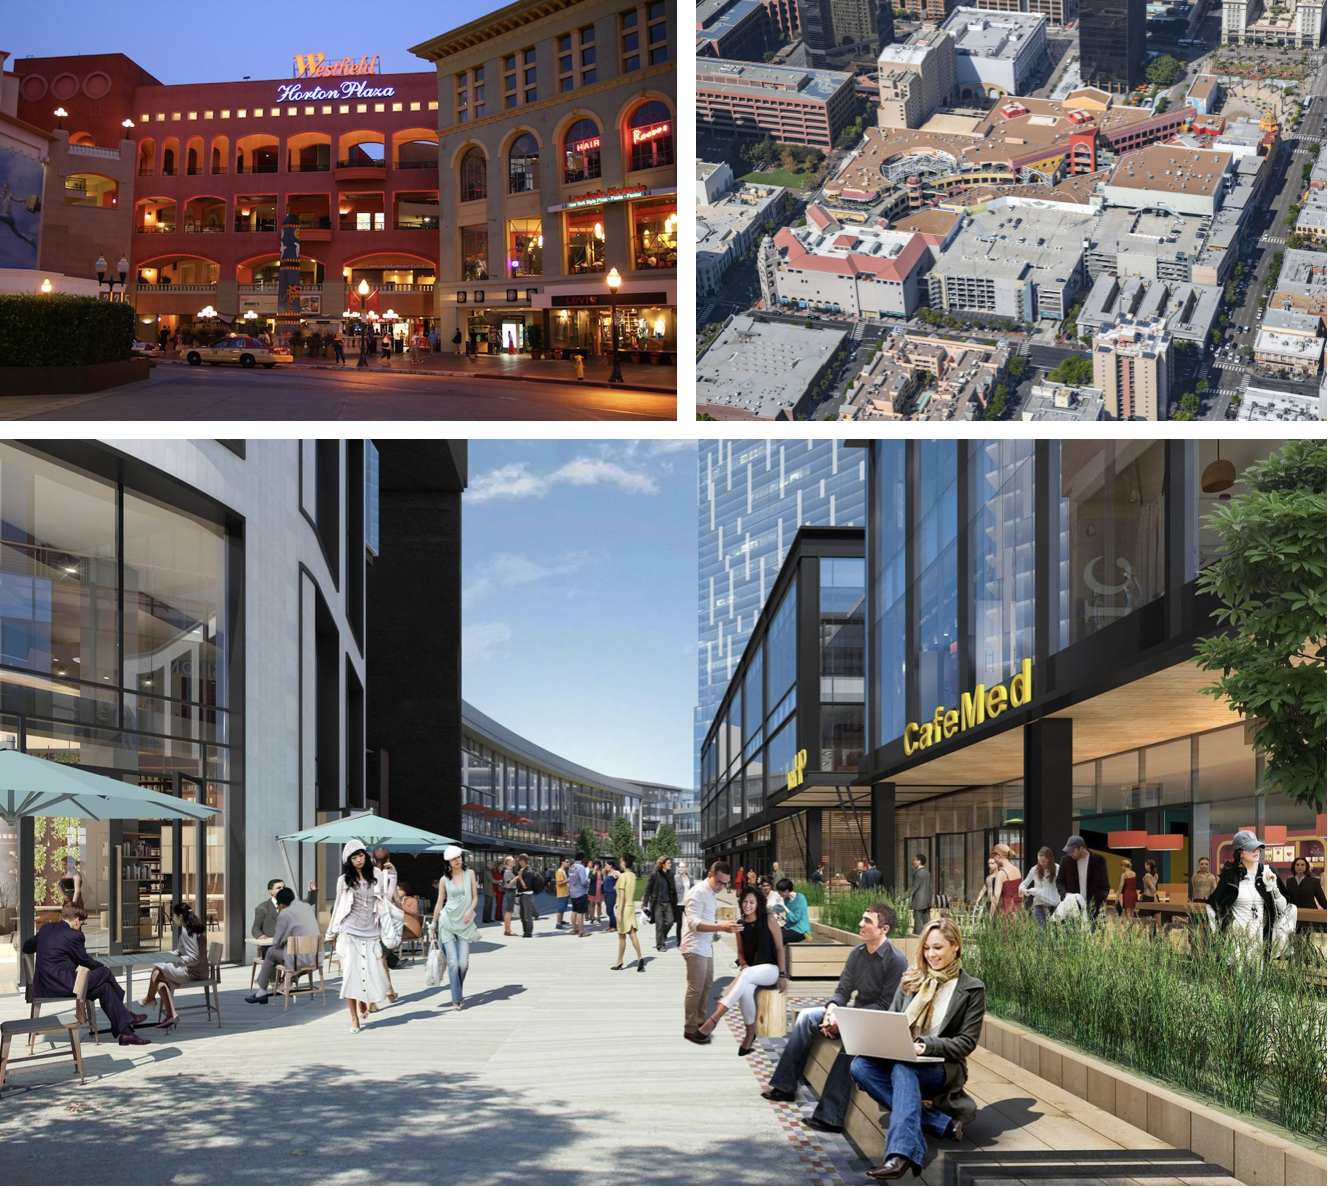 Sandiegoville A New Food Hall Is Coming To Downtown San Diego As Part Of Horton Plaza Overhaul Team Behind The Keating Hotel To Open Horton Plaza Food Hall